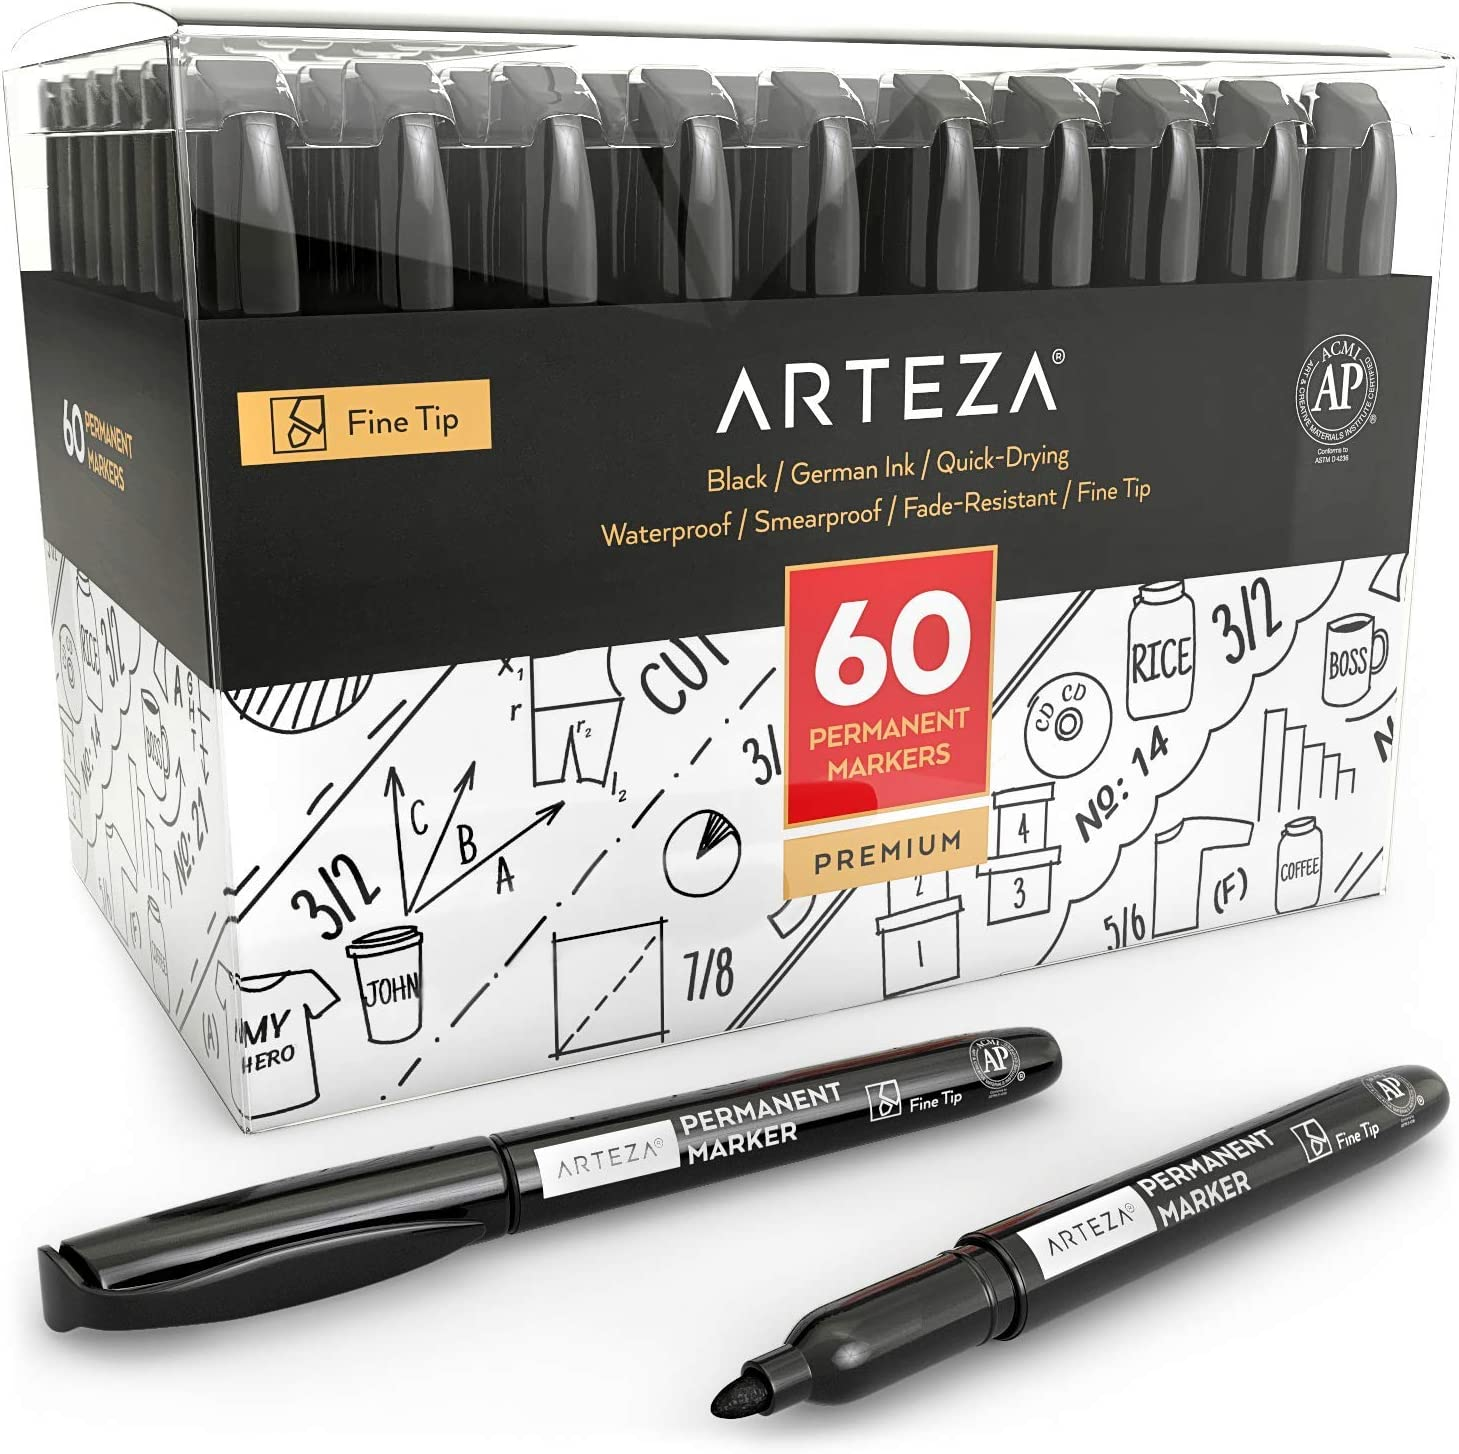 ARTEZA Permanent Markers Set of 60 (Black, Fine Tip) - Waterproof Markers - Premium Smear Proof Pens - Waterproof - Quick Drying